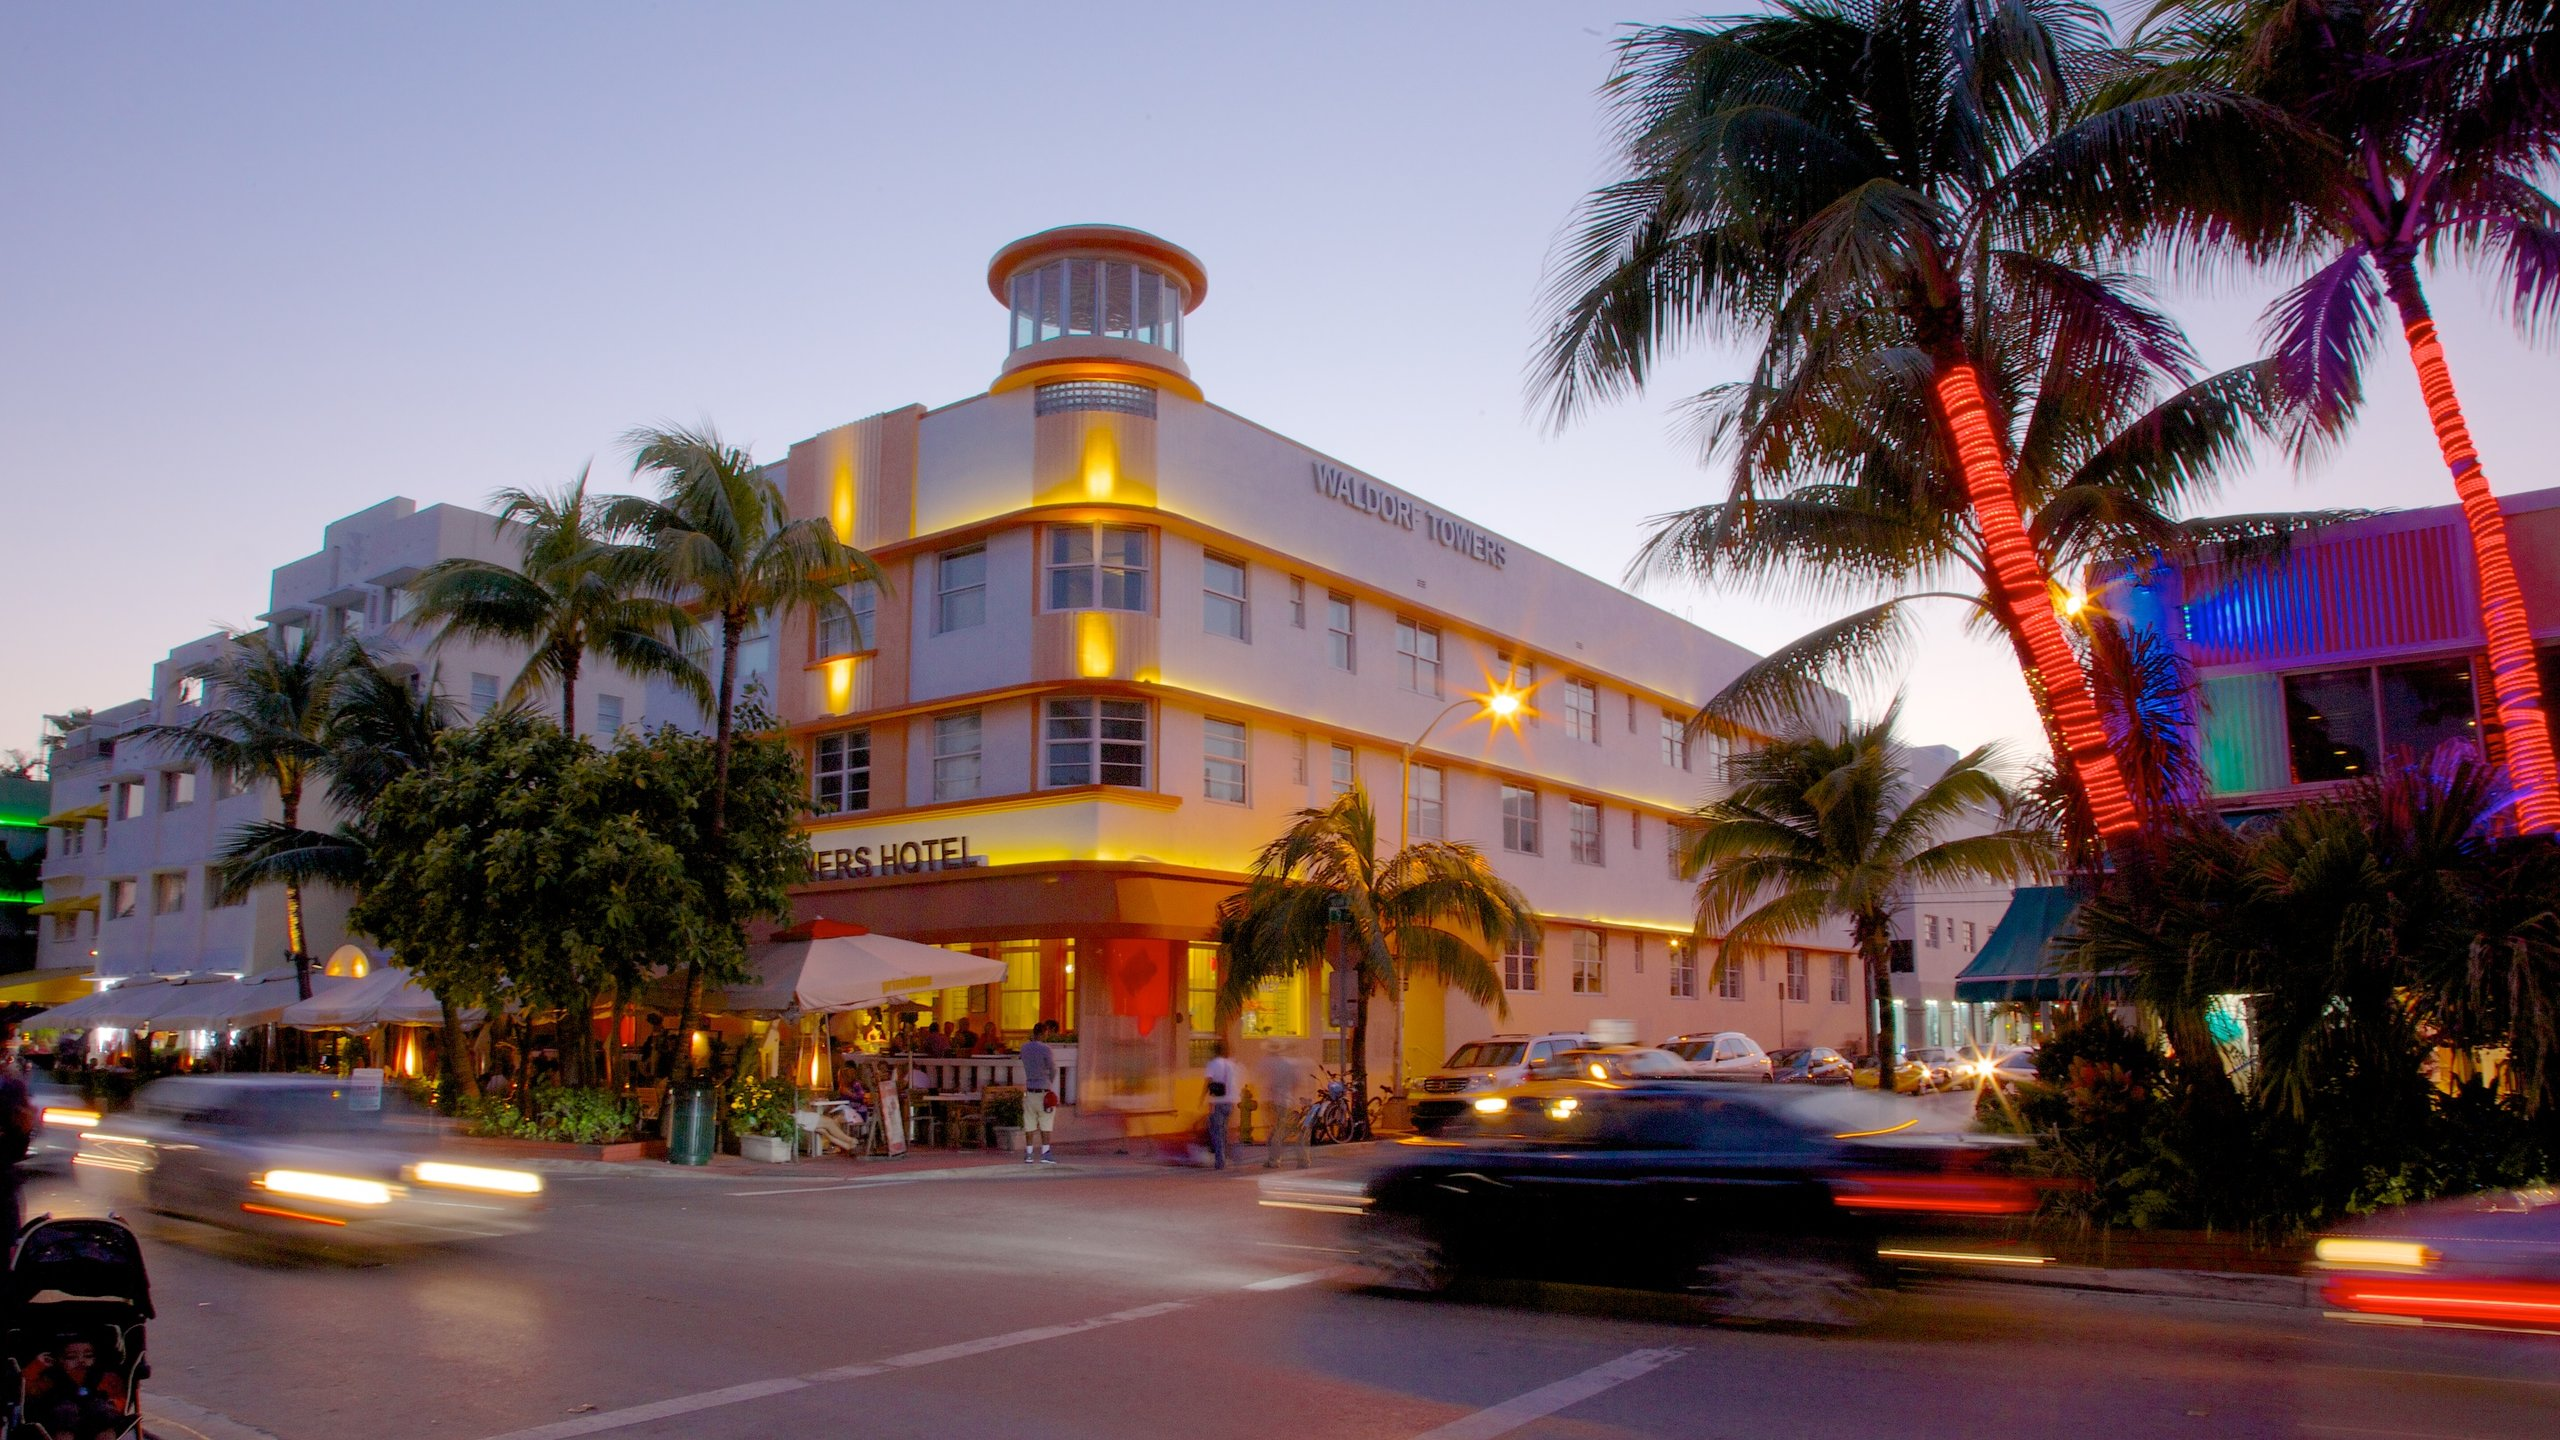 Where To Find Cheapest Hotels Cheap Hotels In Miami Find 43 Hotel Deals Travelocity